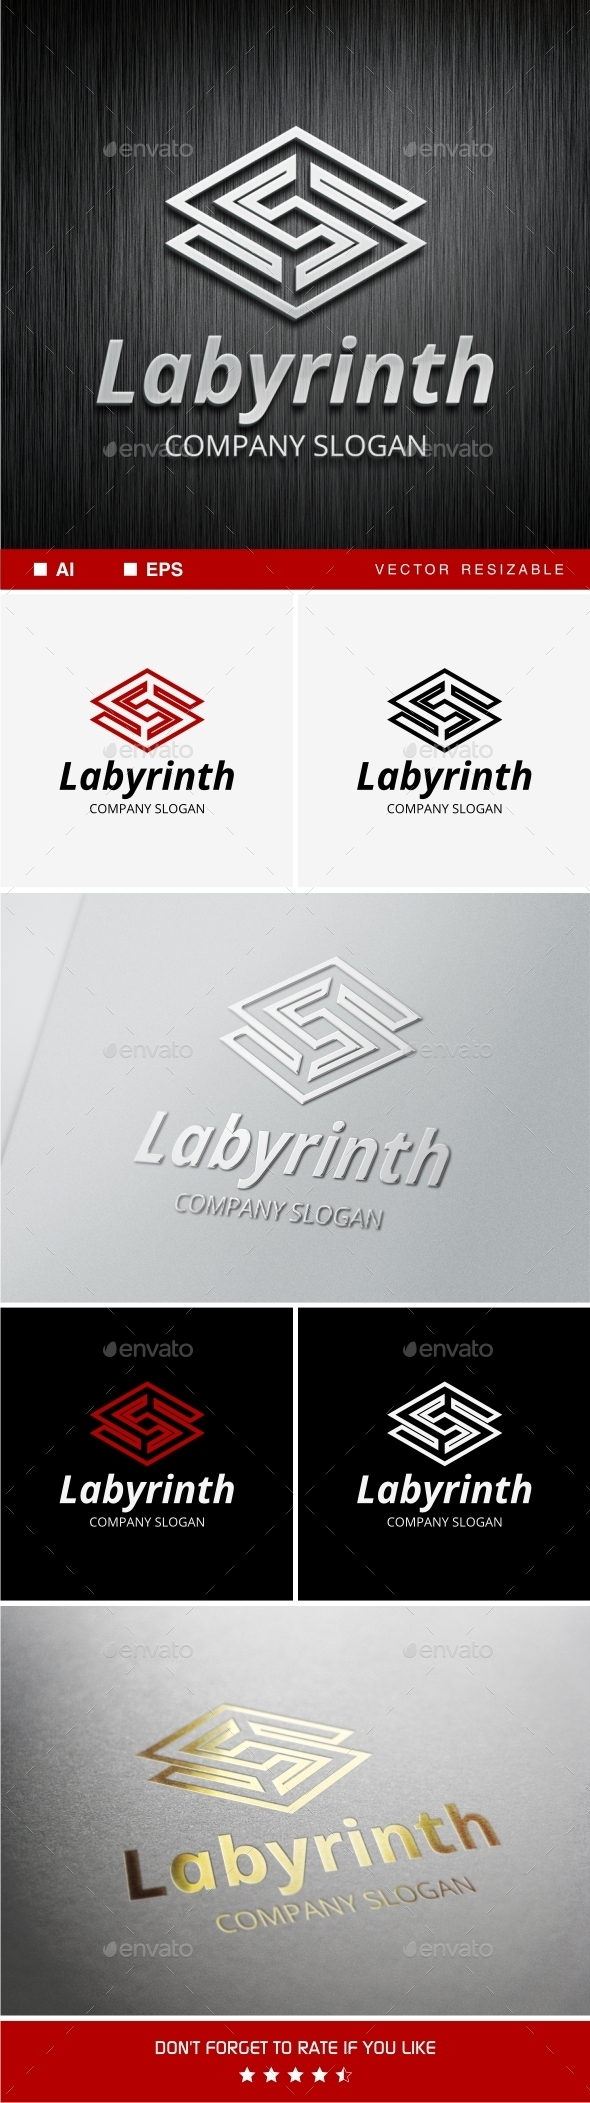 Labyrinth • S Letter Logo Template - Abstract Logo Templates